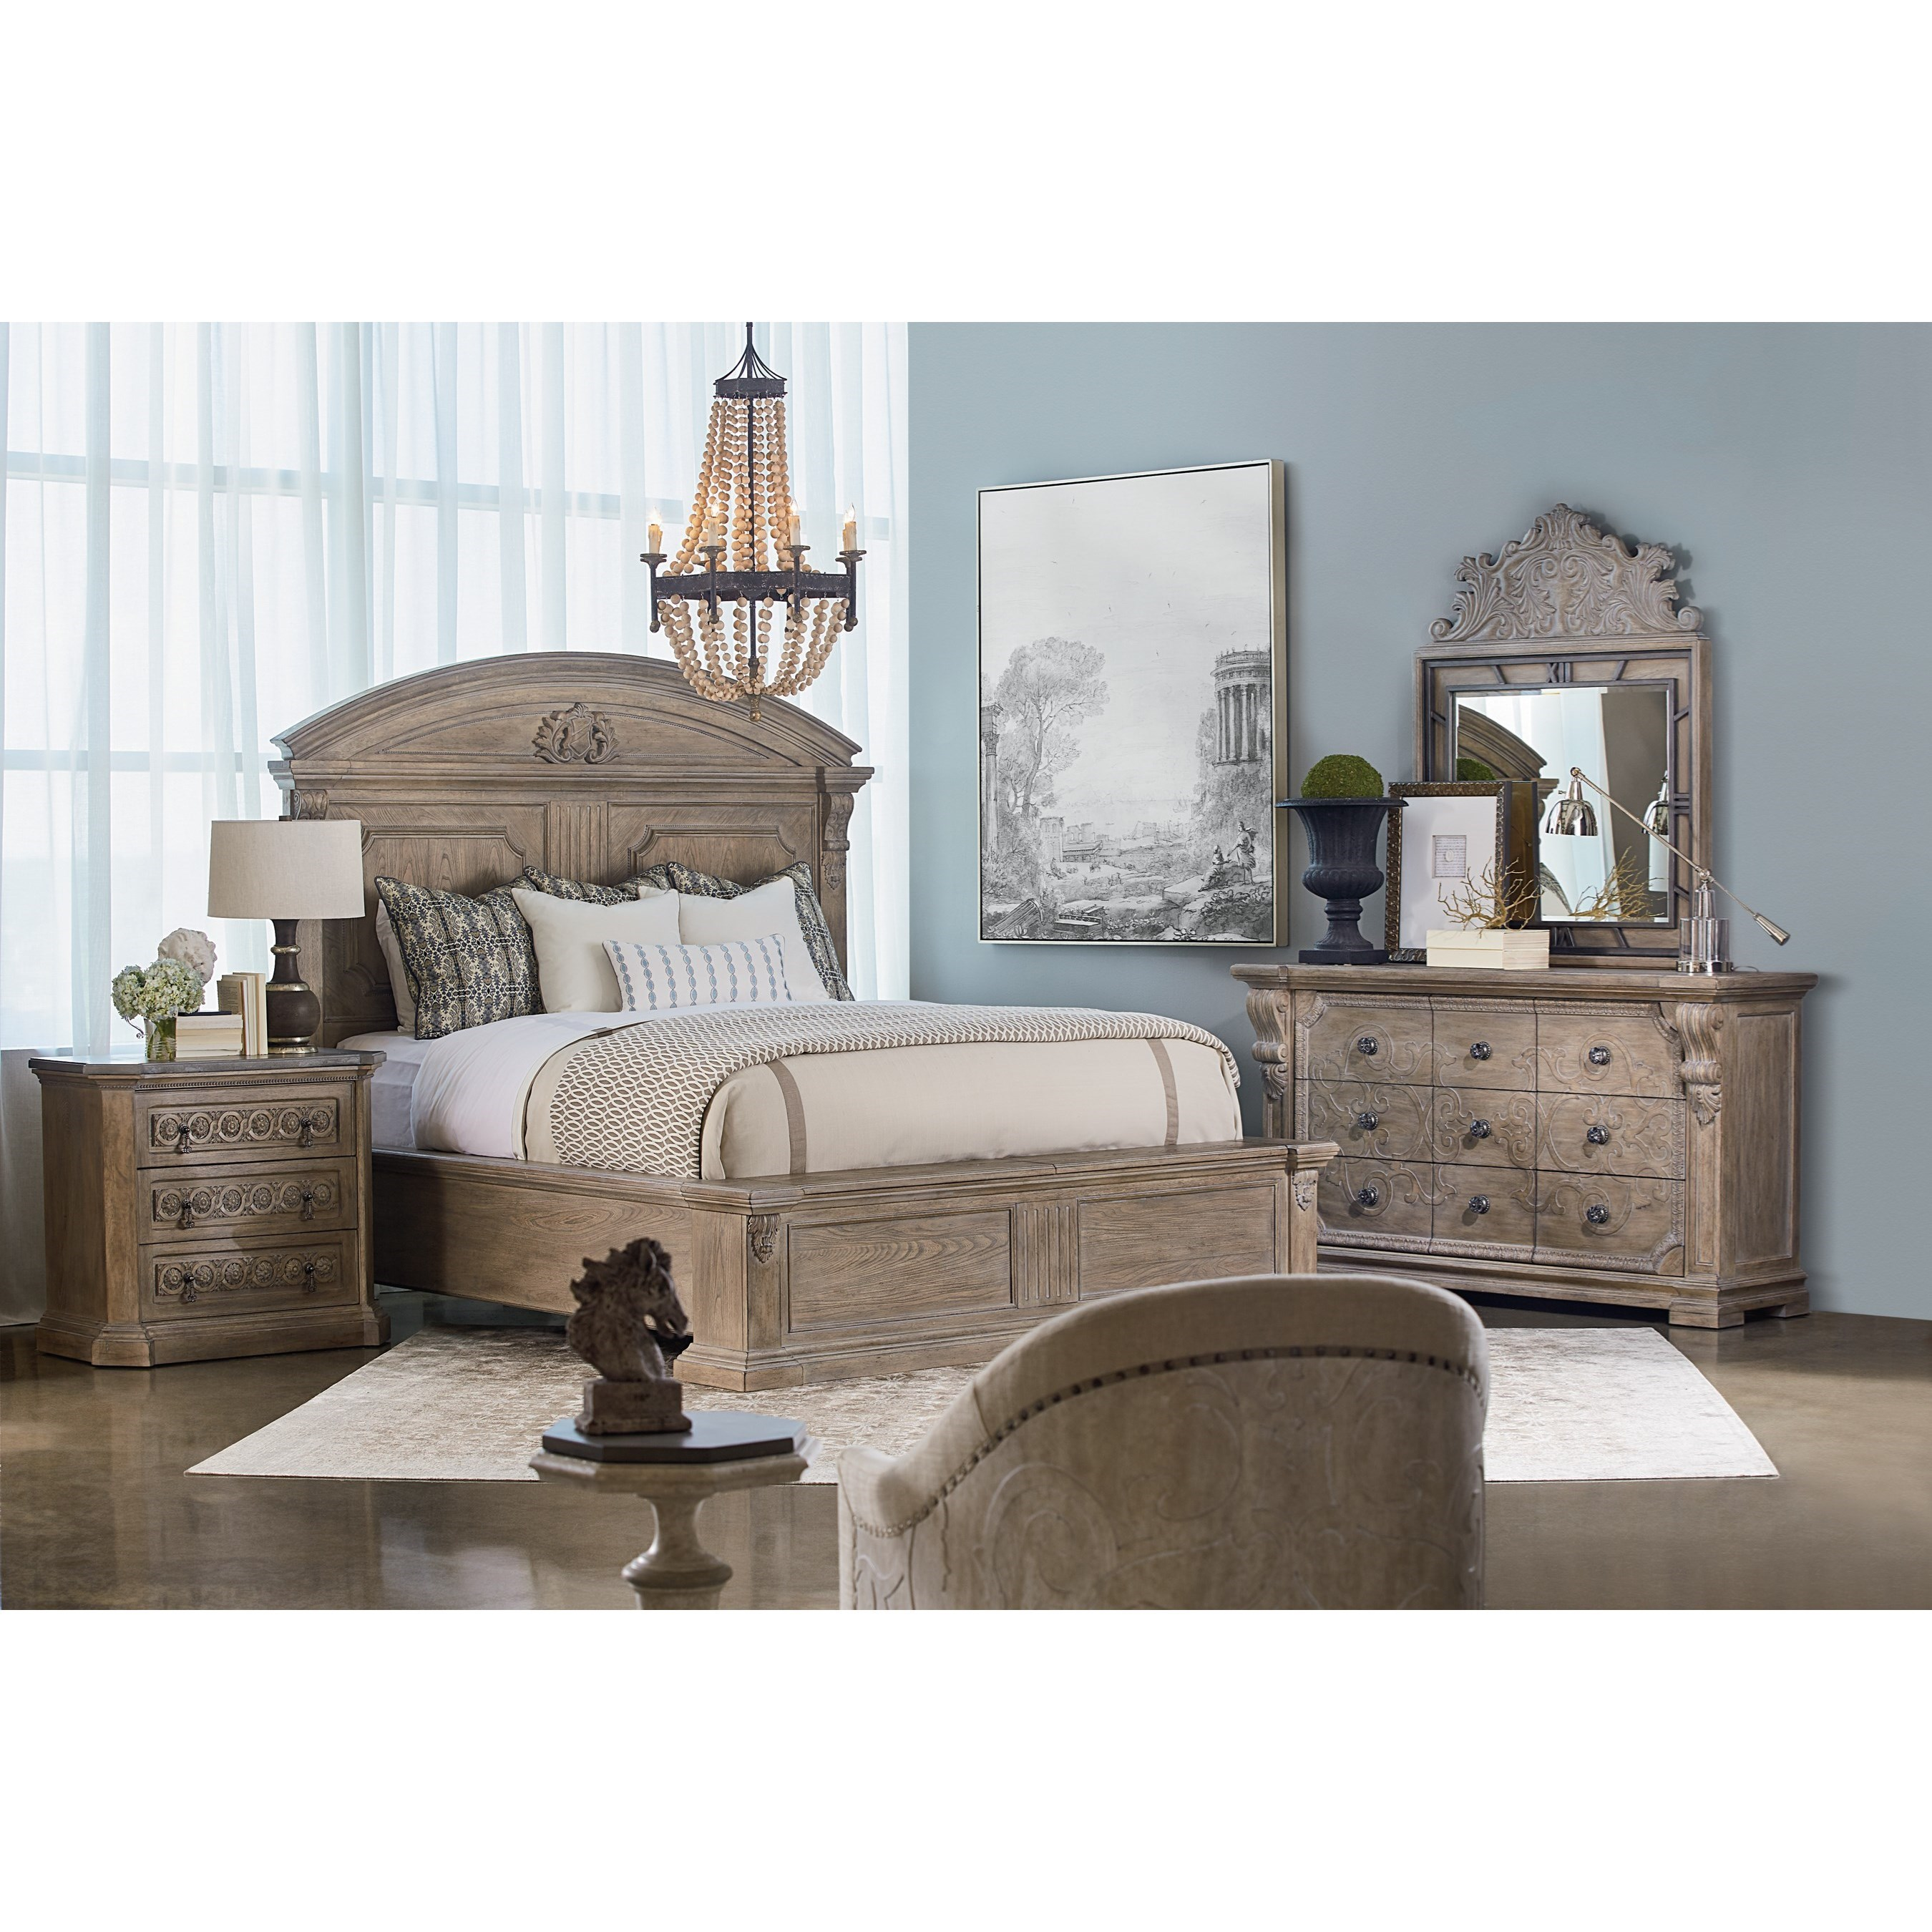 Arch Salvage Queen Bedroom Group by A.R.T. Furniture Inc at Baer's Furniture